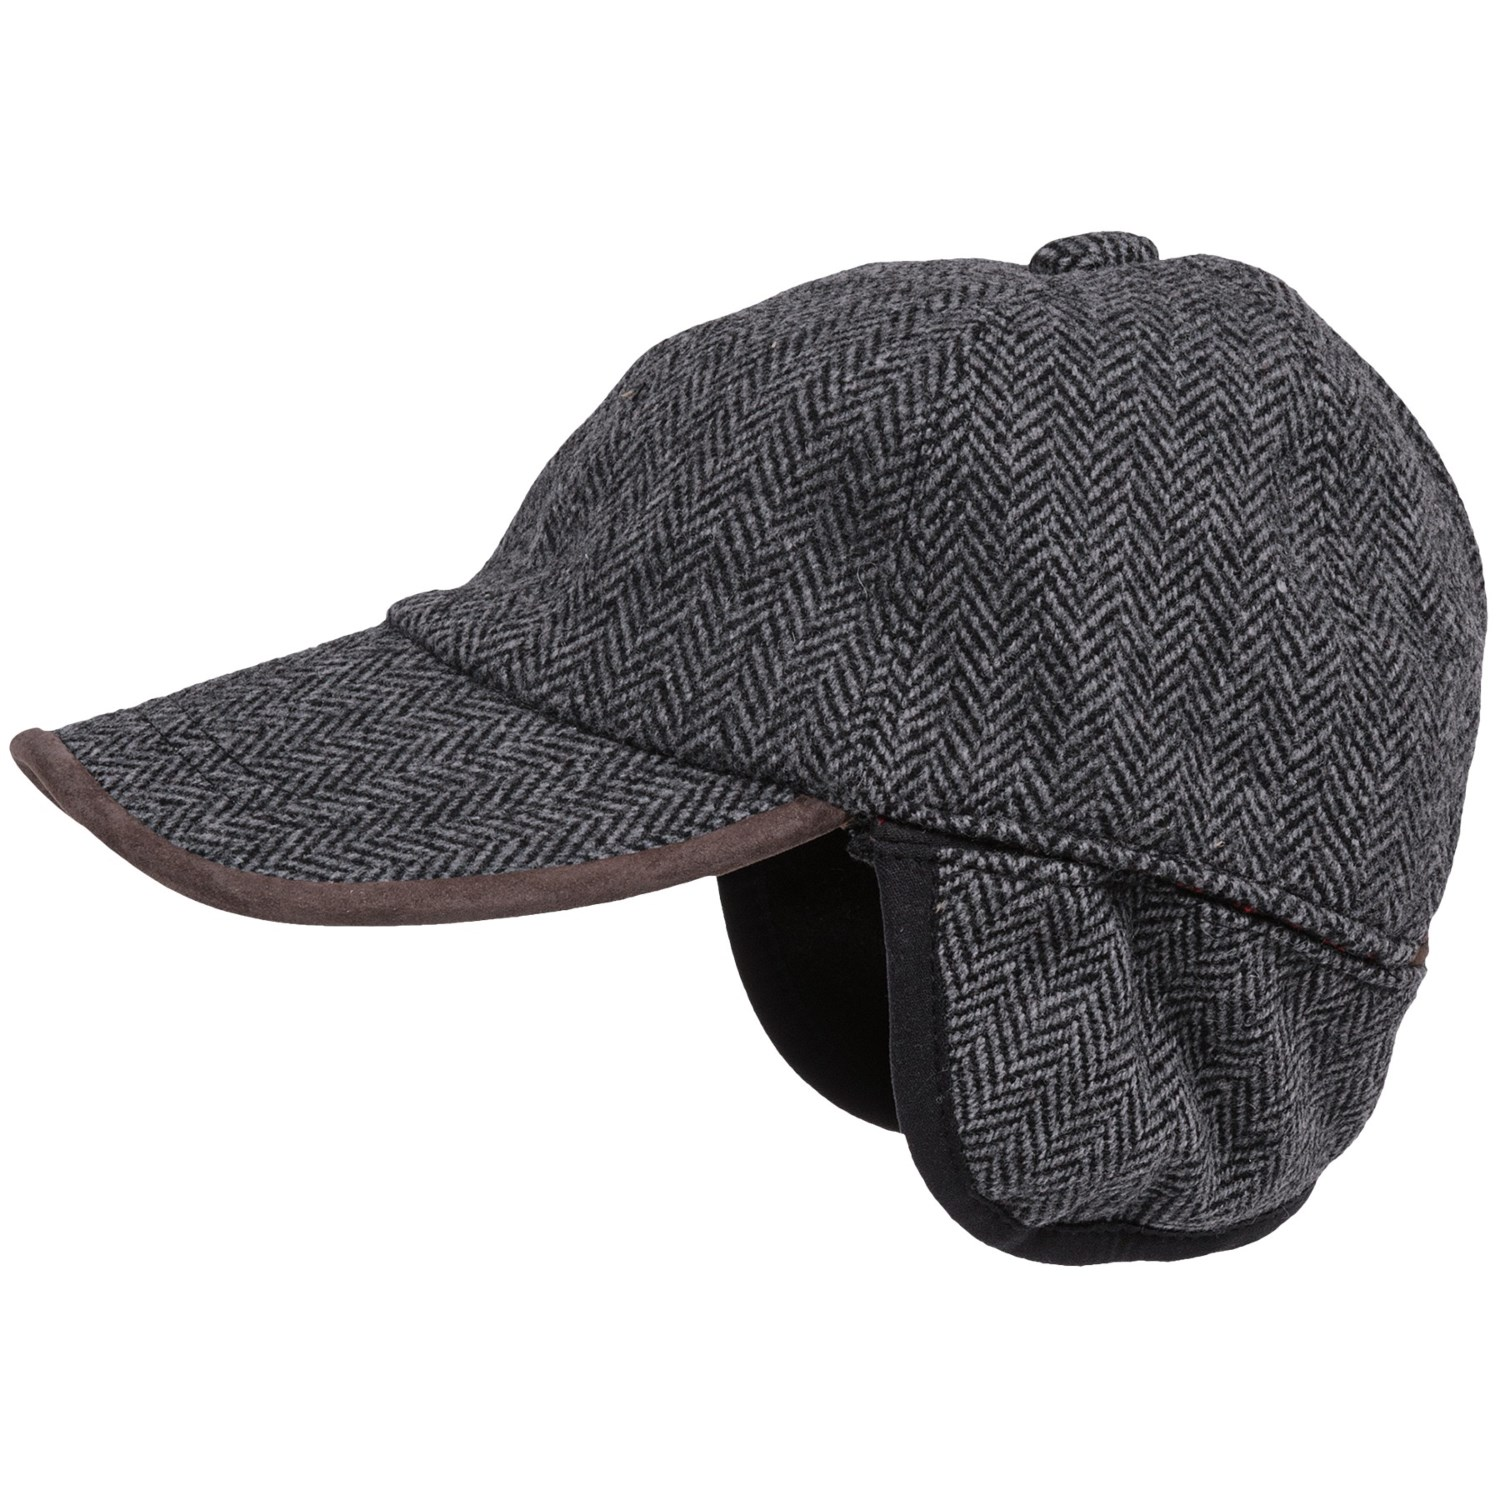 Driving Caps With Ear Flaps Woolrich Wool Cap Ear Flaps